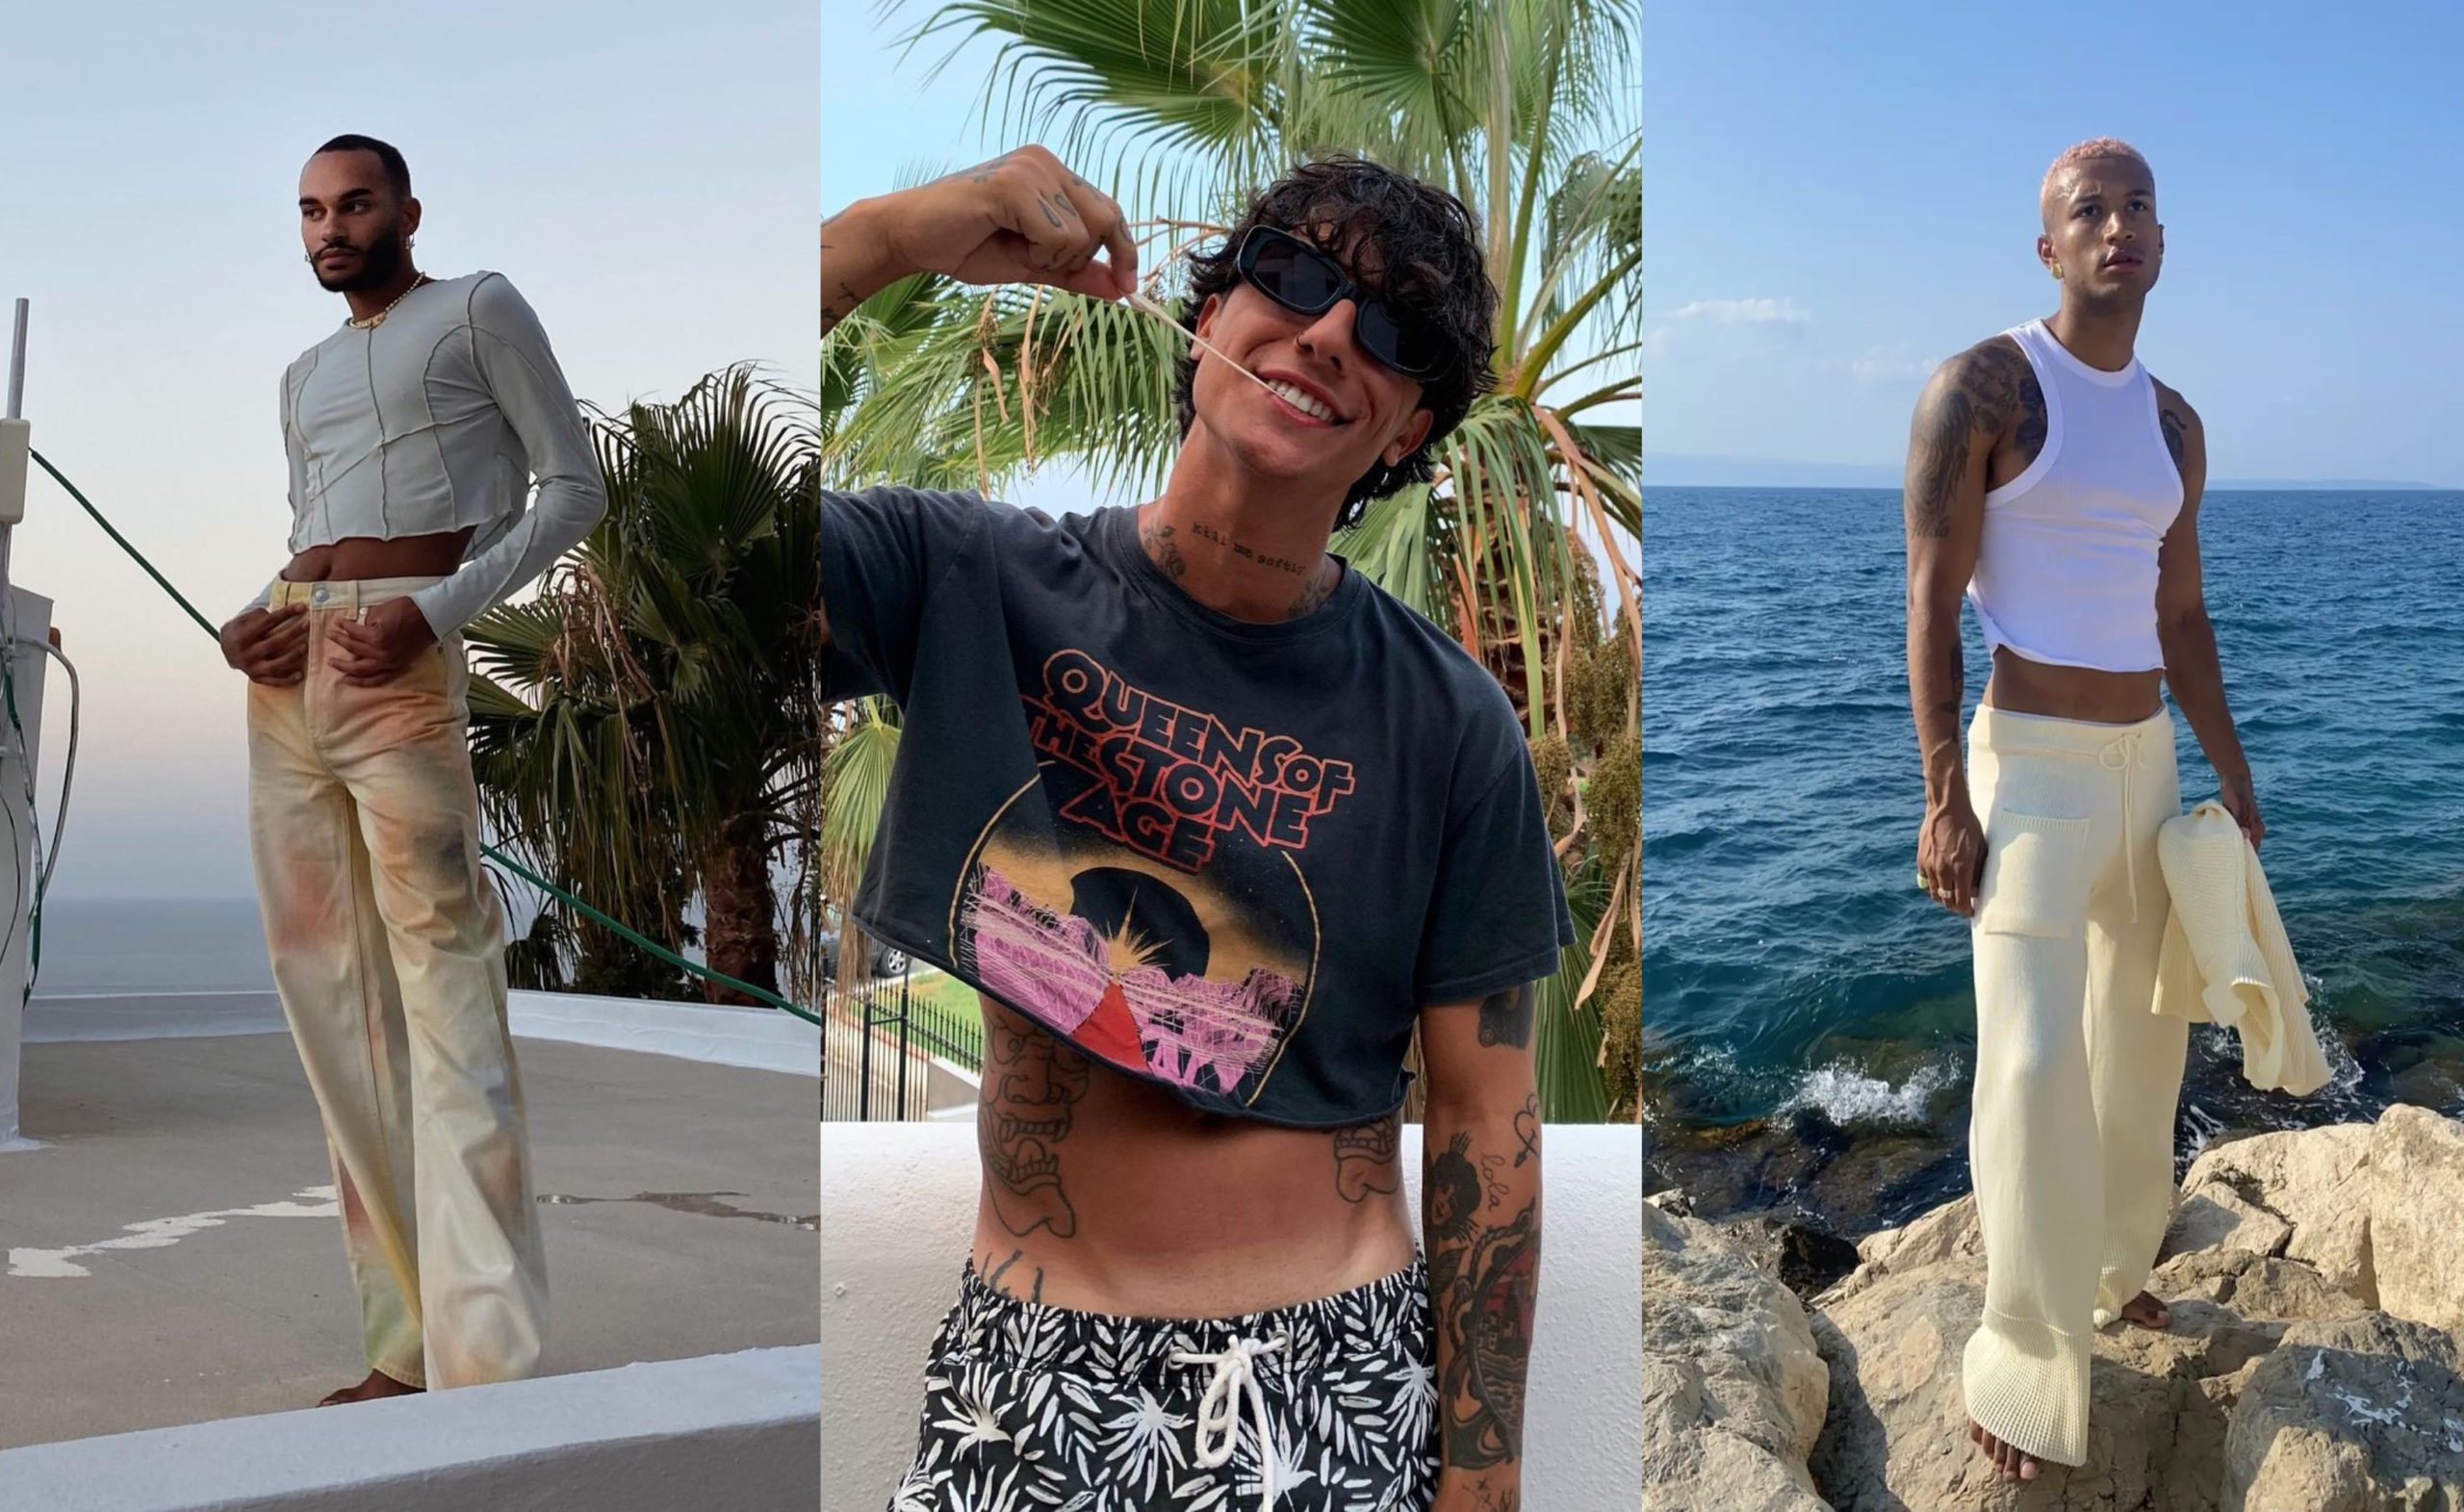 PAUSE Highlights: The Changing Narrative Around Men's Crop Tops